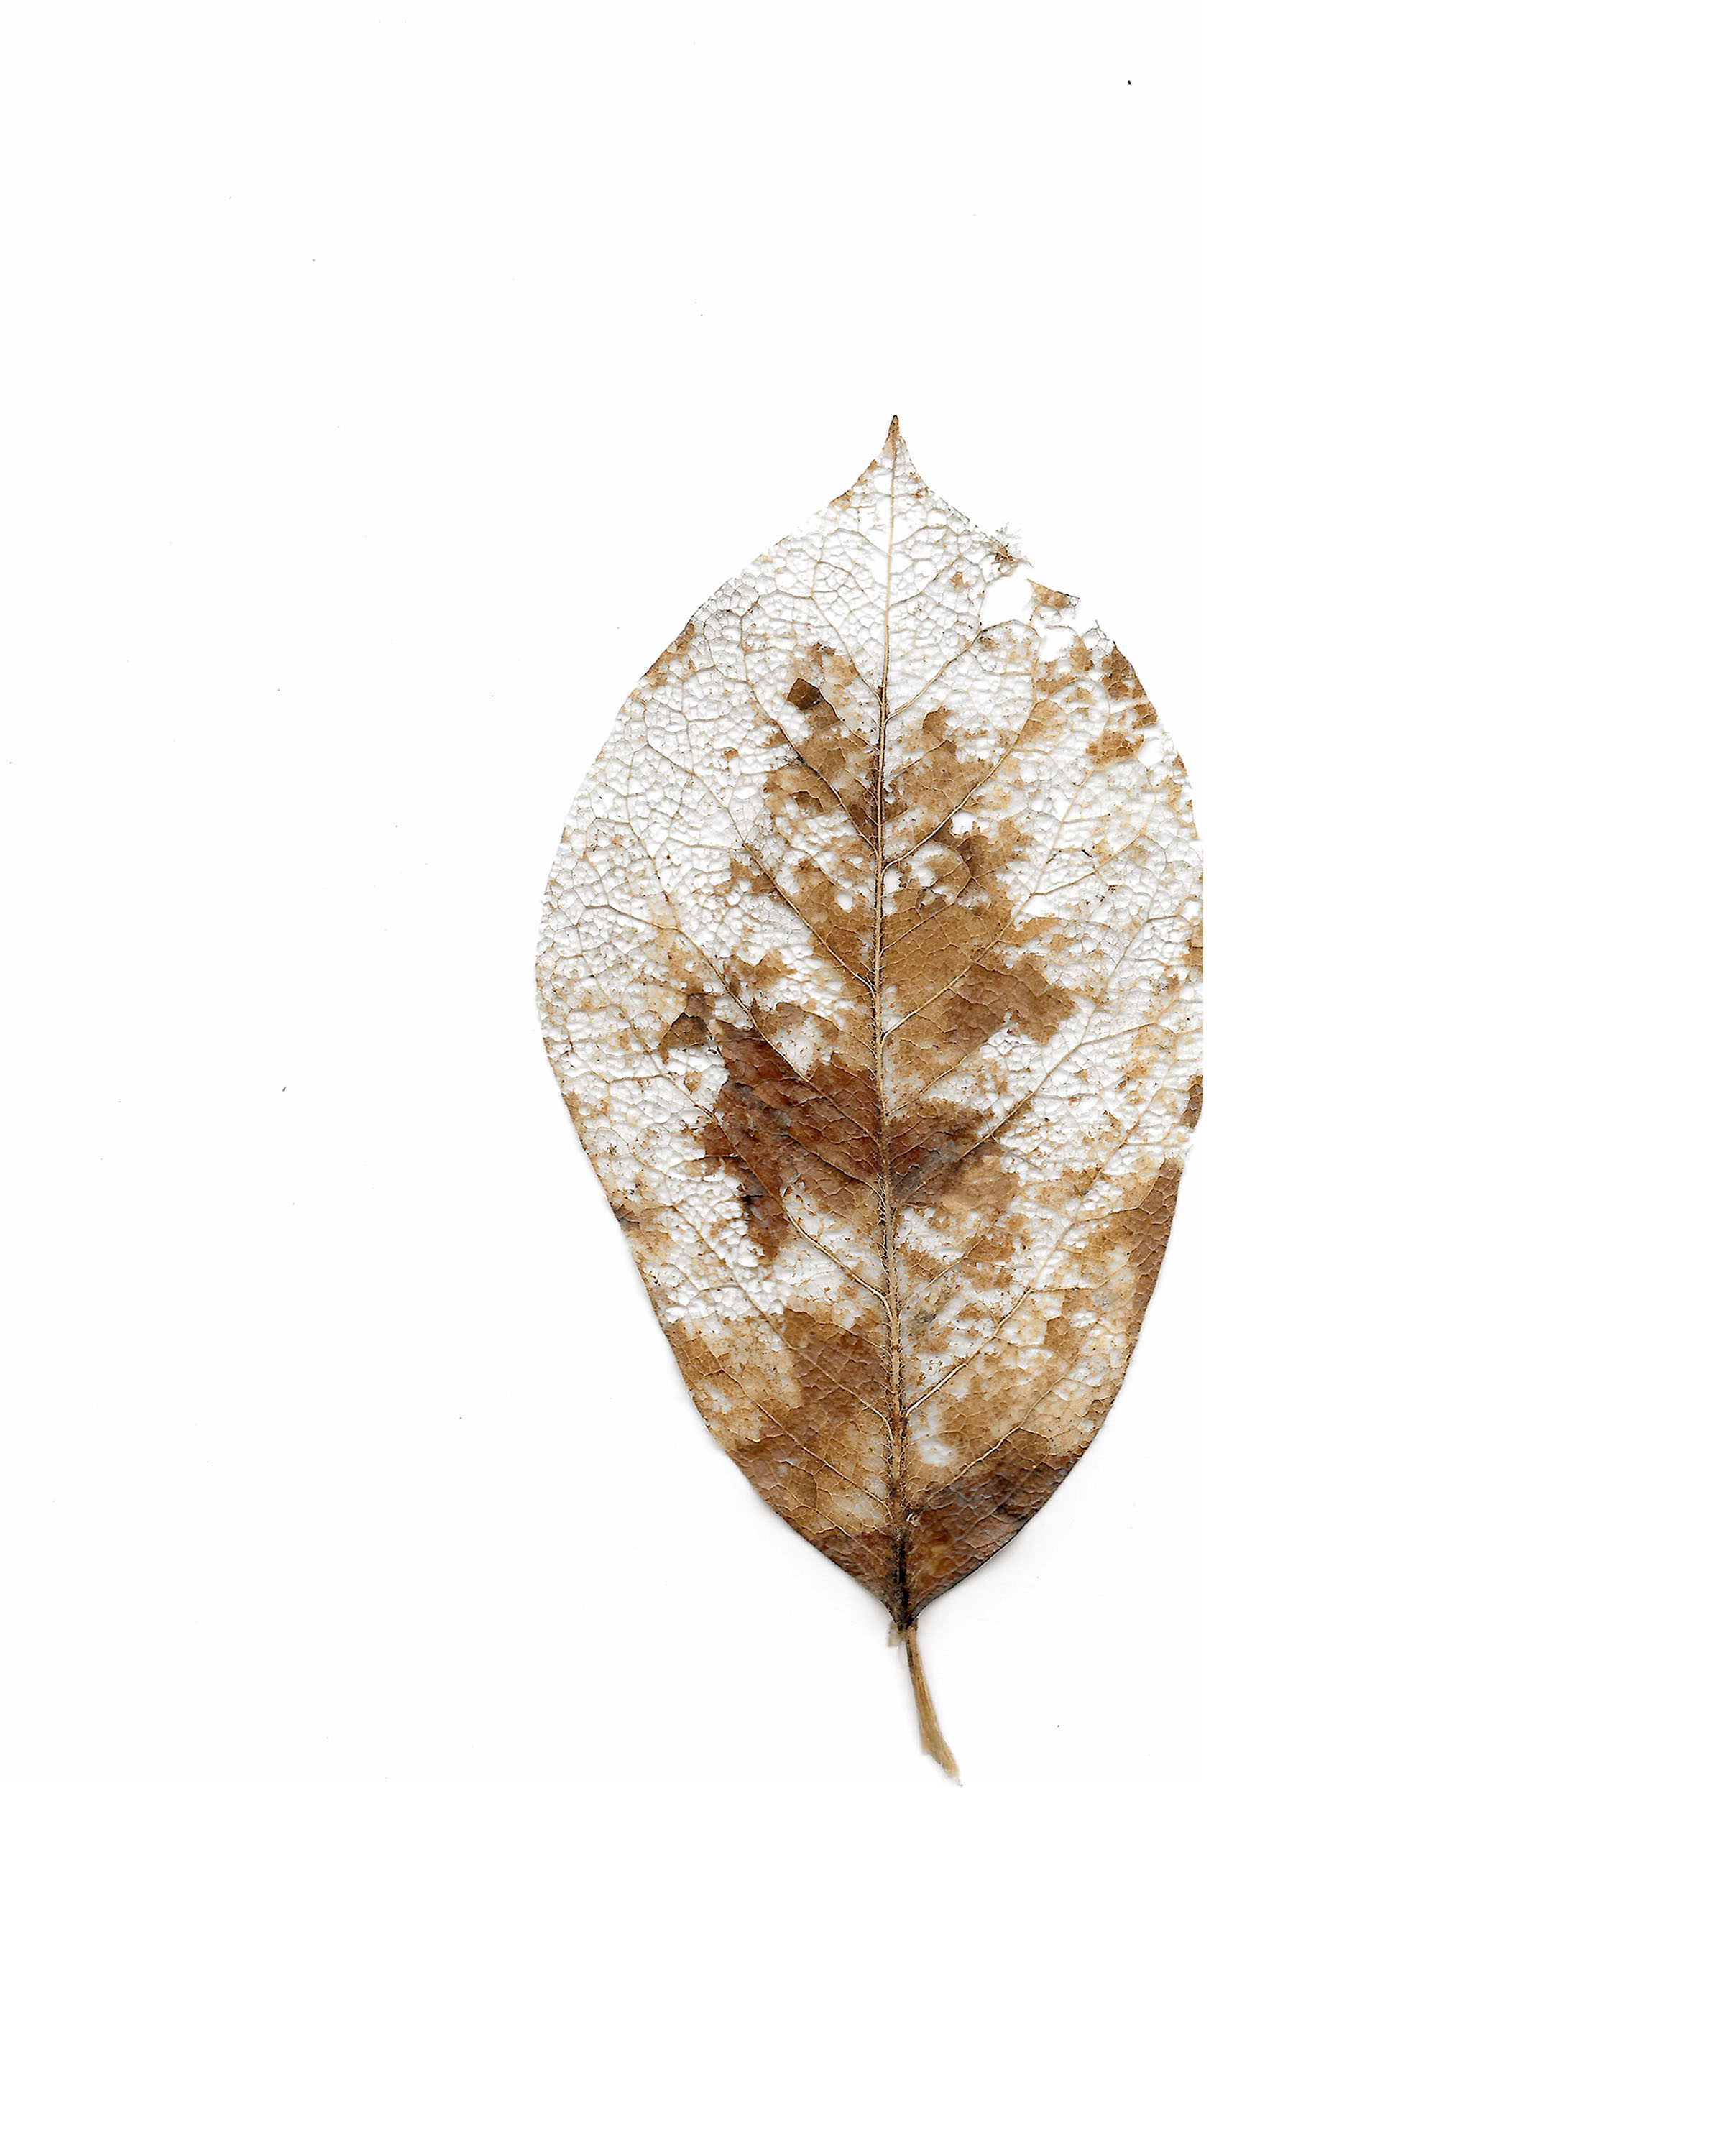 decomposing leaf 2018.jpg